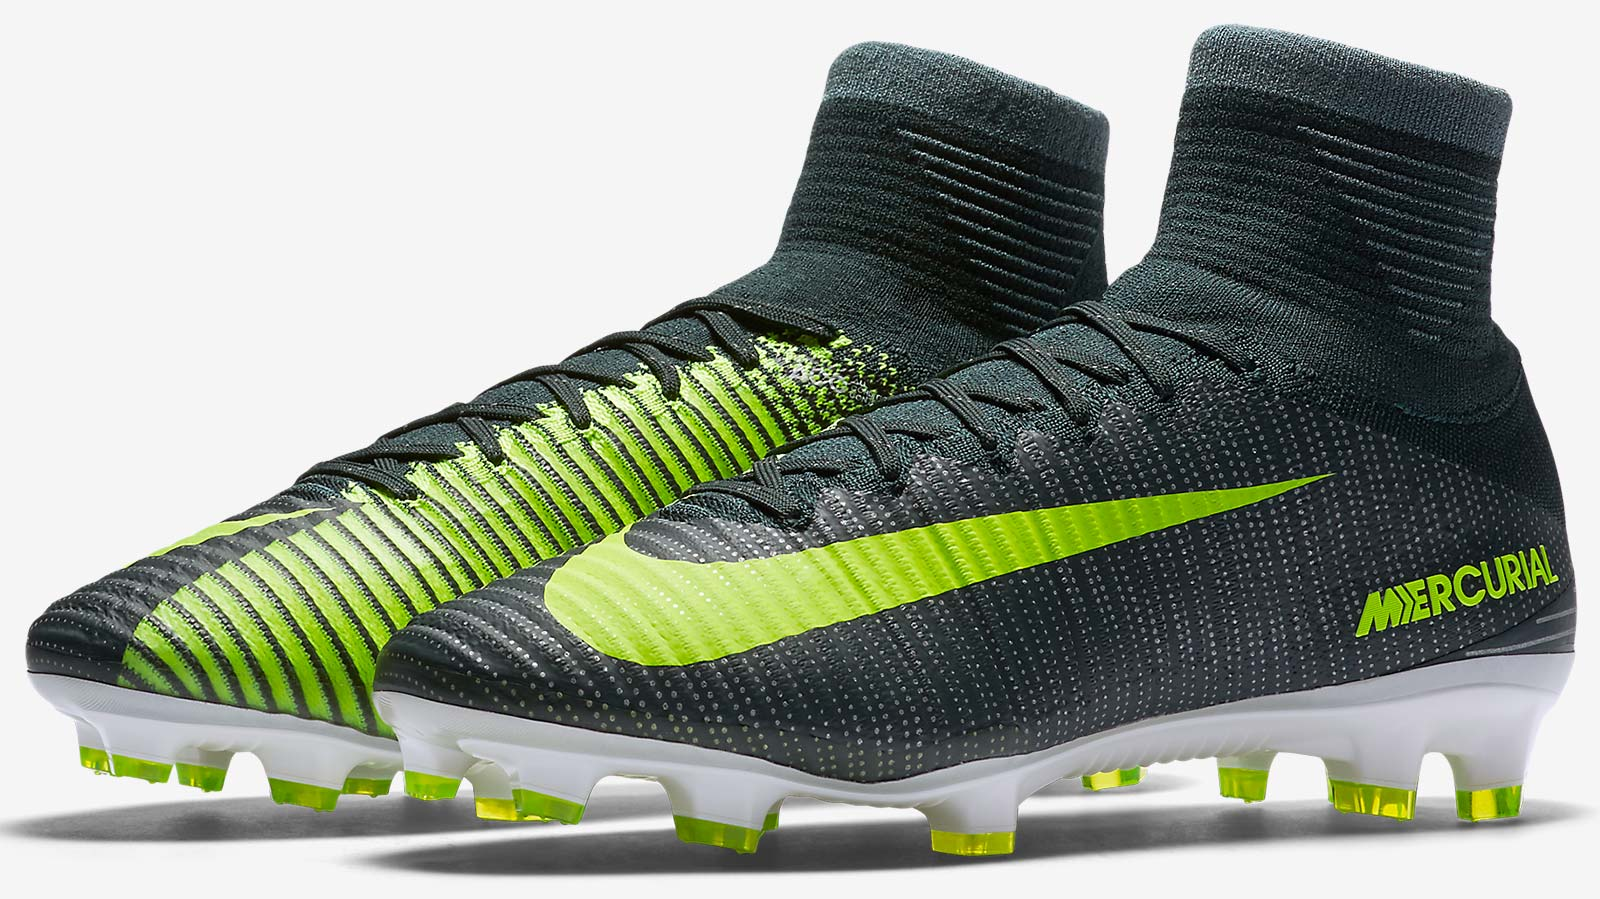 newest 72c48 46e87 Así son las nuevas botas Nike Mercurial Superfly 5 CR7 Chapter 3